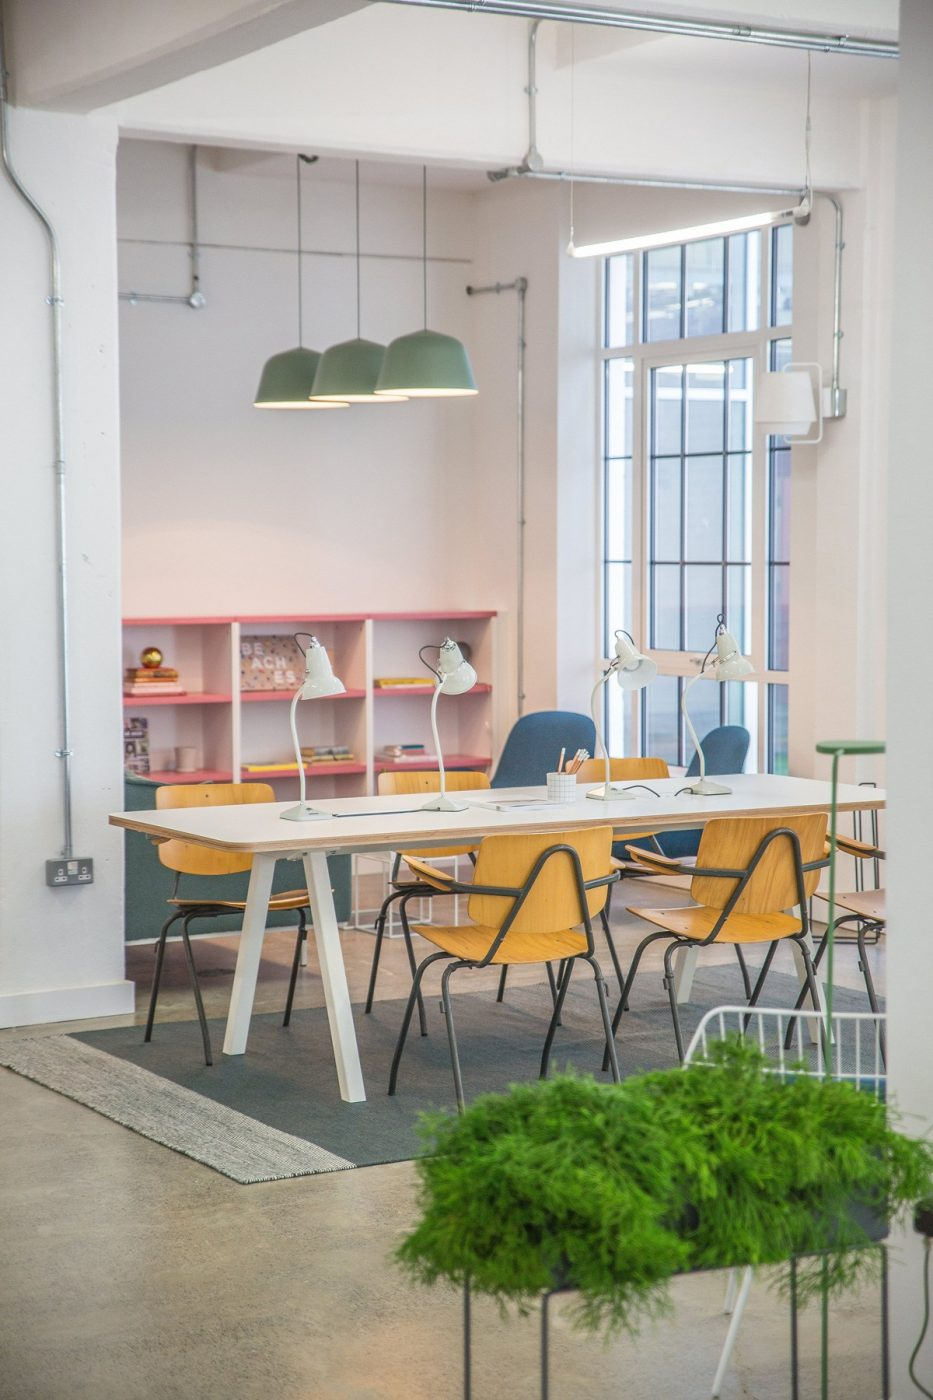 133 Whitechapel High Street by Morrow + Lorraine Architects